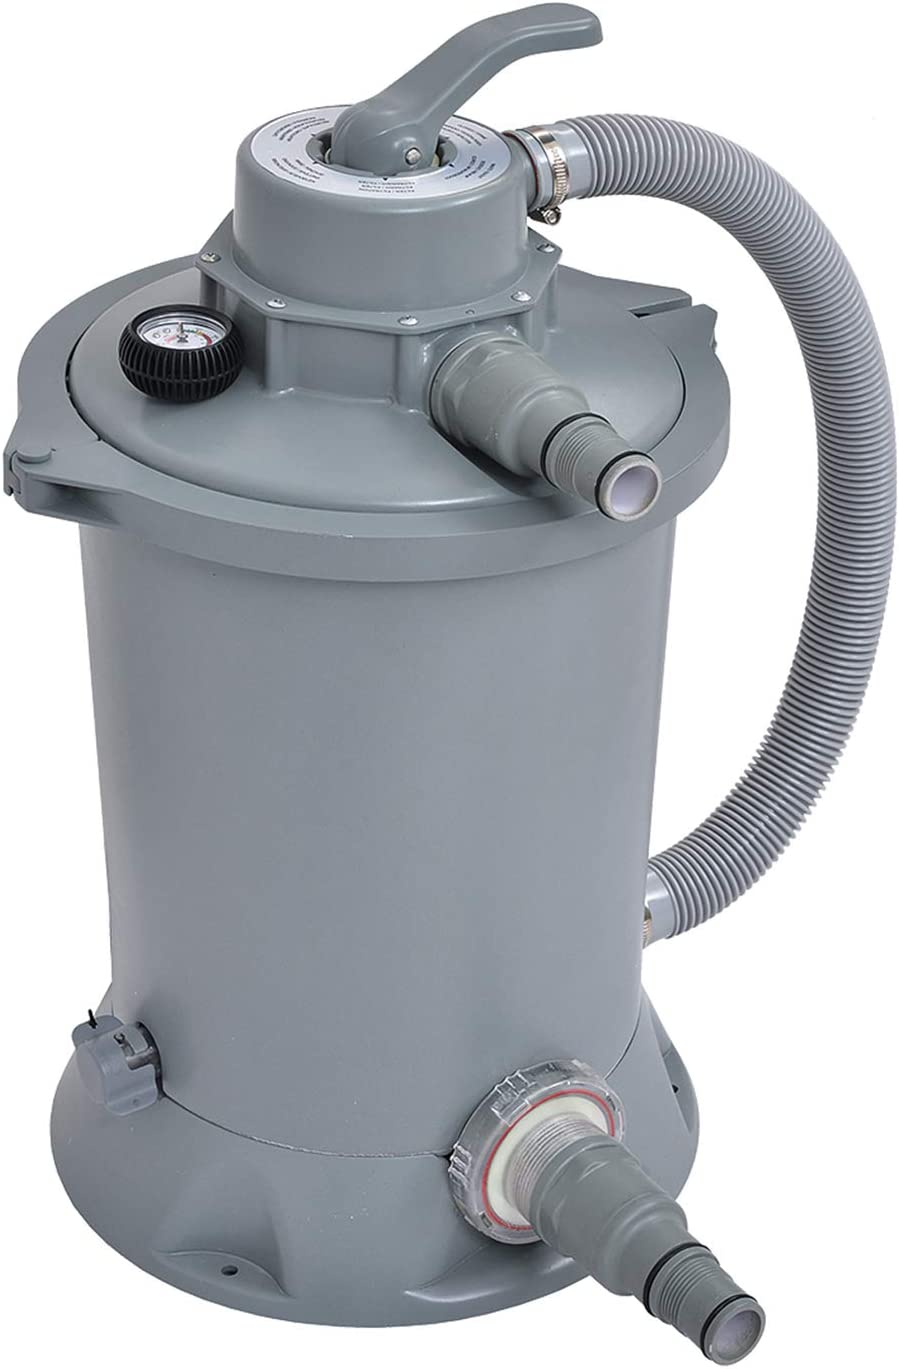 JLeisure Avenli 290730US Clean Plus Corrosion Proof 1000 GPH Sand Filter Pump with Pressure Gauge for Swimming Pools, Hot Tubs, and Spas, Gray